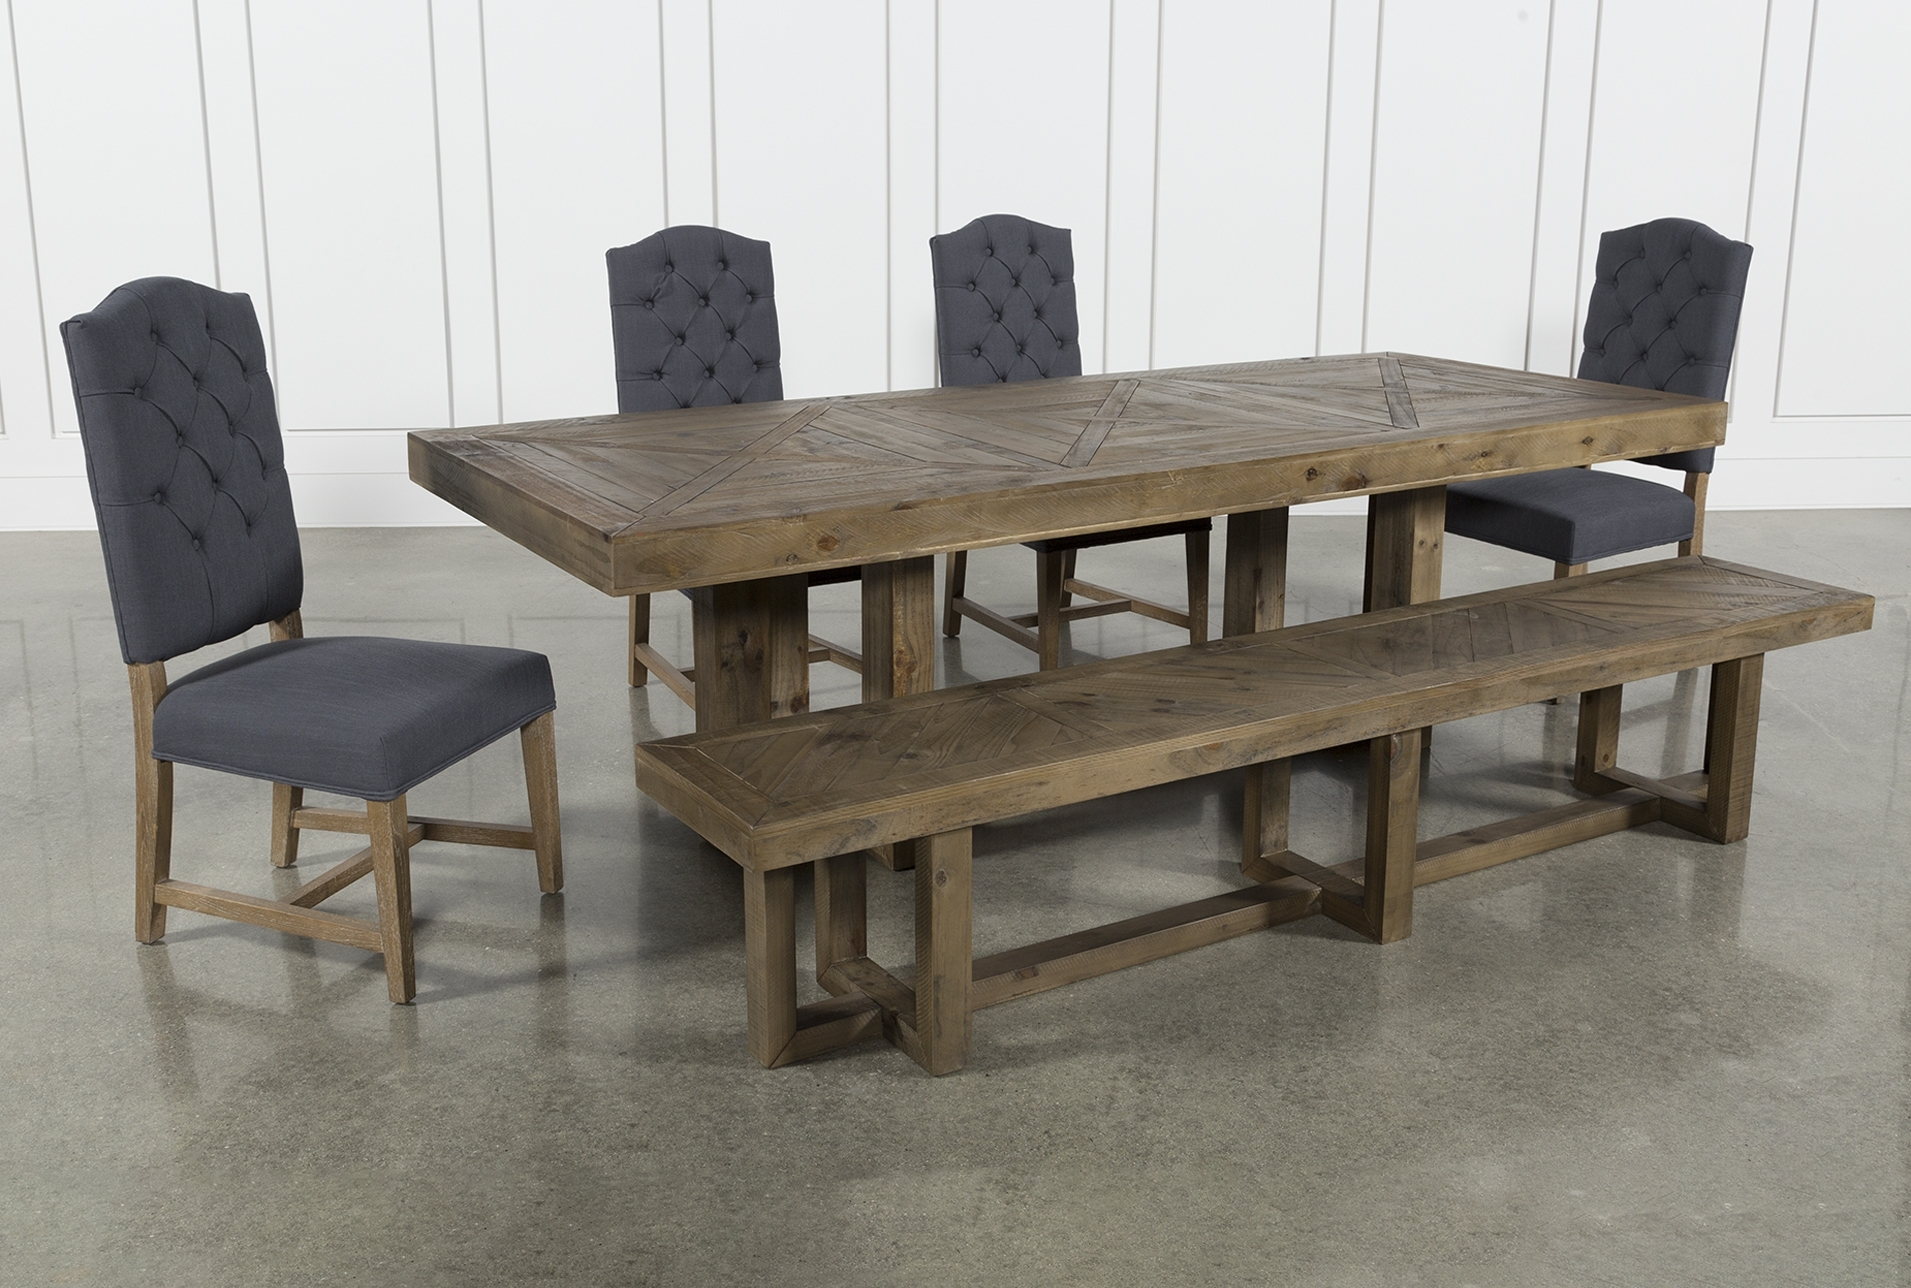 Palazzo 6 Piece Rectangle Dining Set With Joss Side Chairs | Palazzo Pertaining To Most Current Palazzo 6 Piece Rectangle Dining Sets With Joss Side Chairs (Photo 1 of 20)